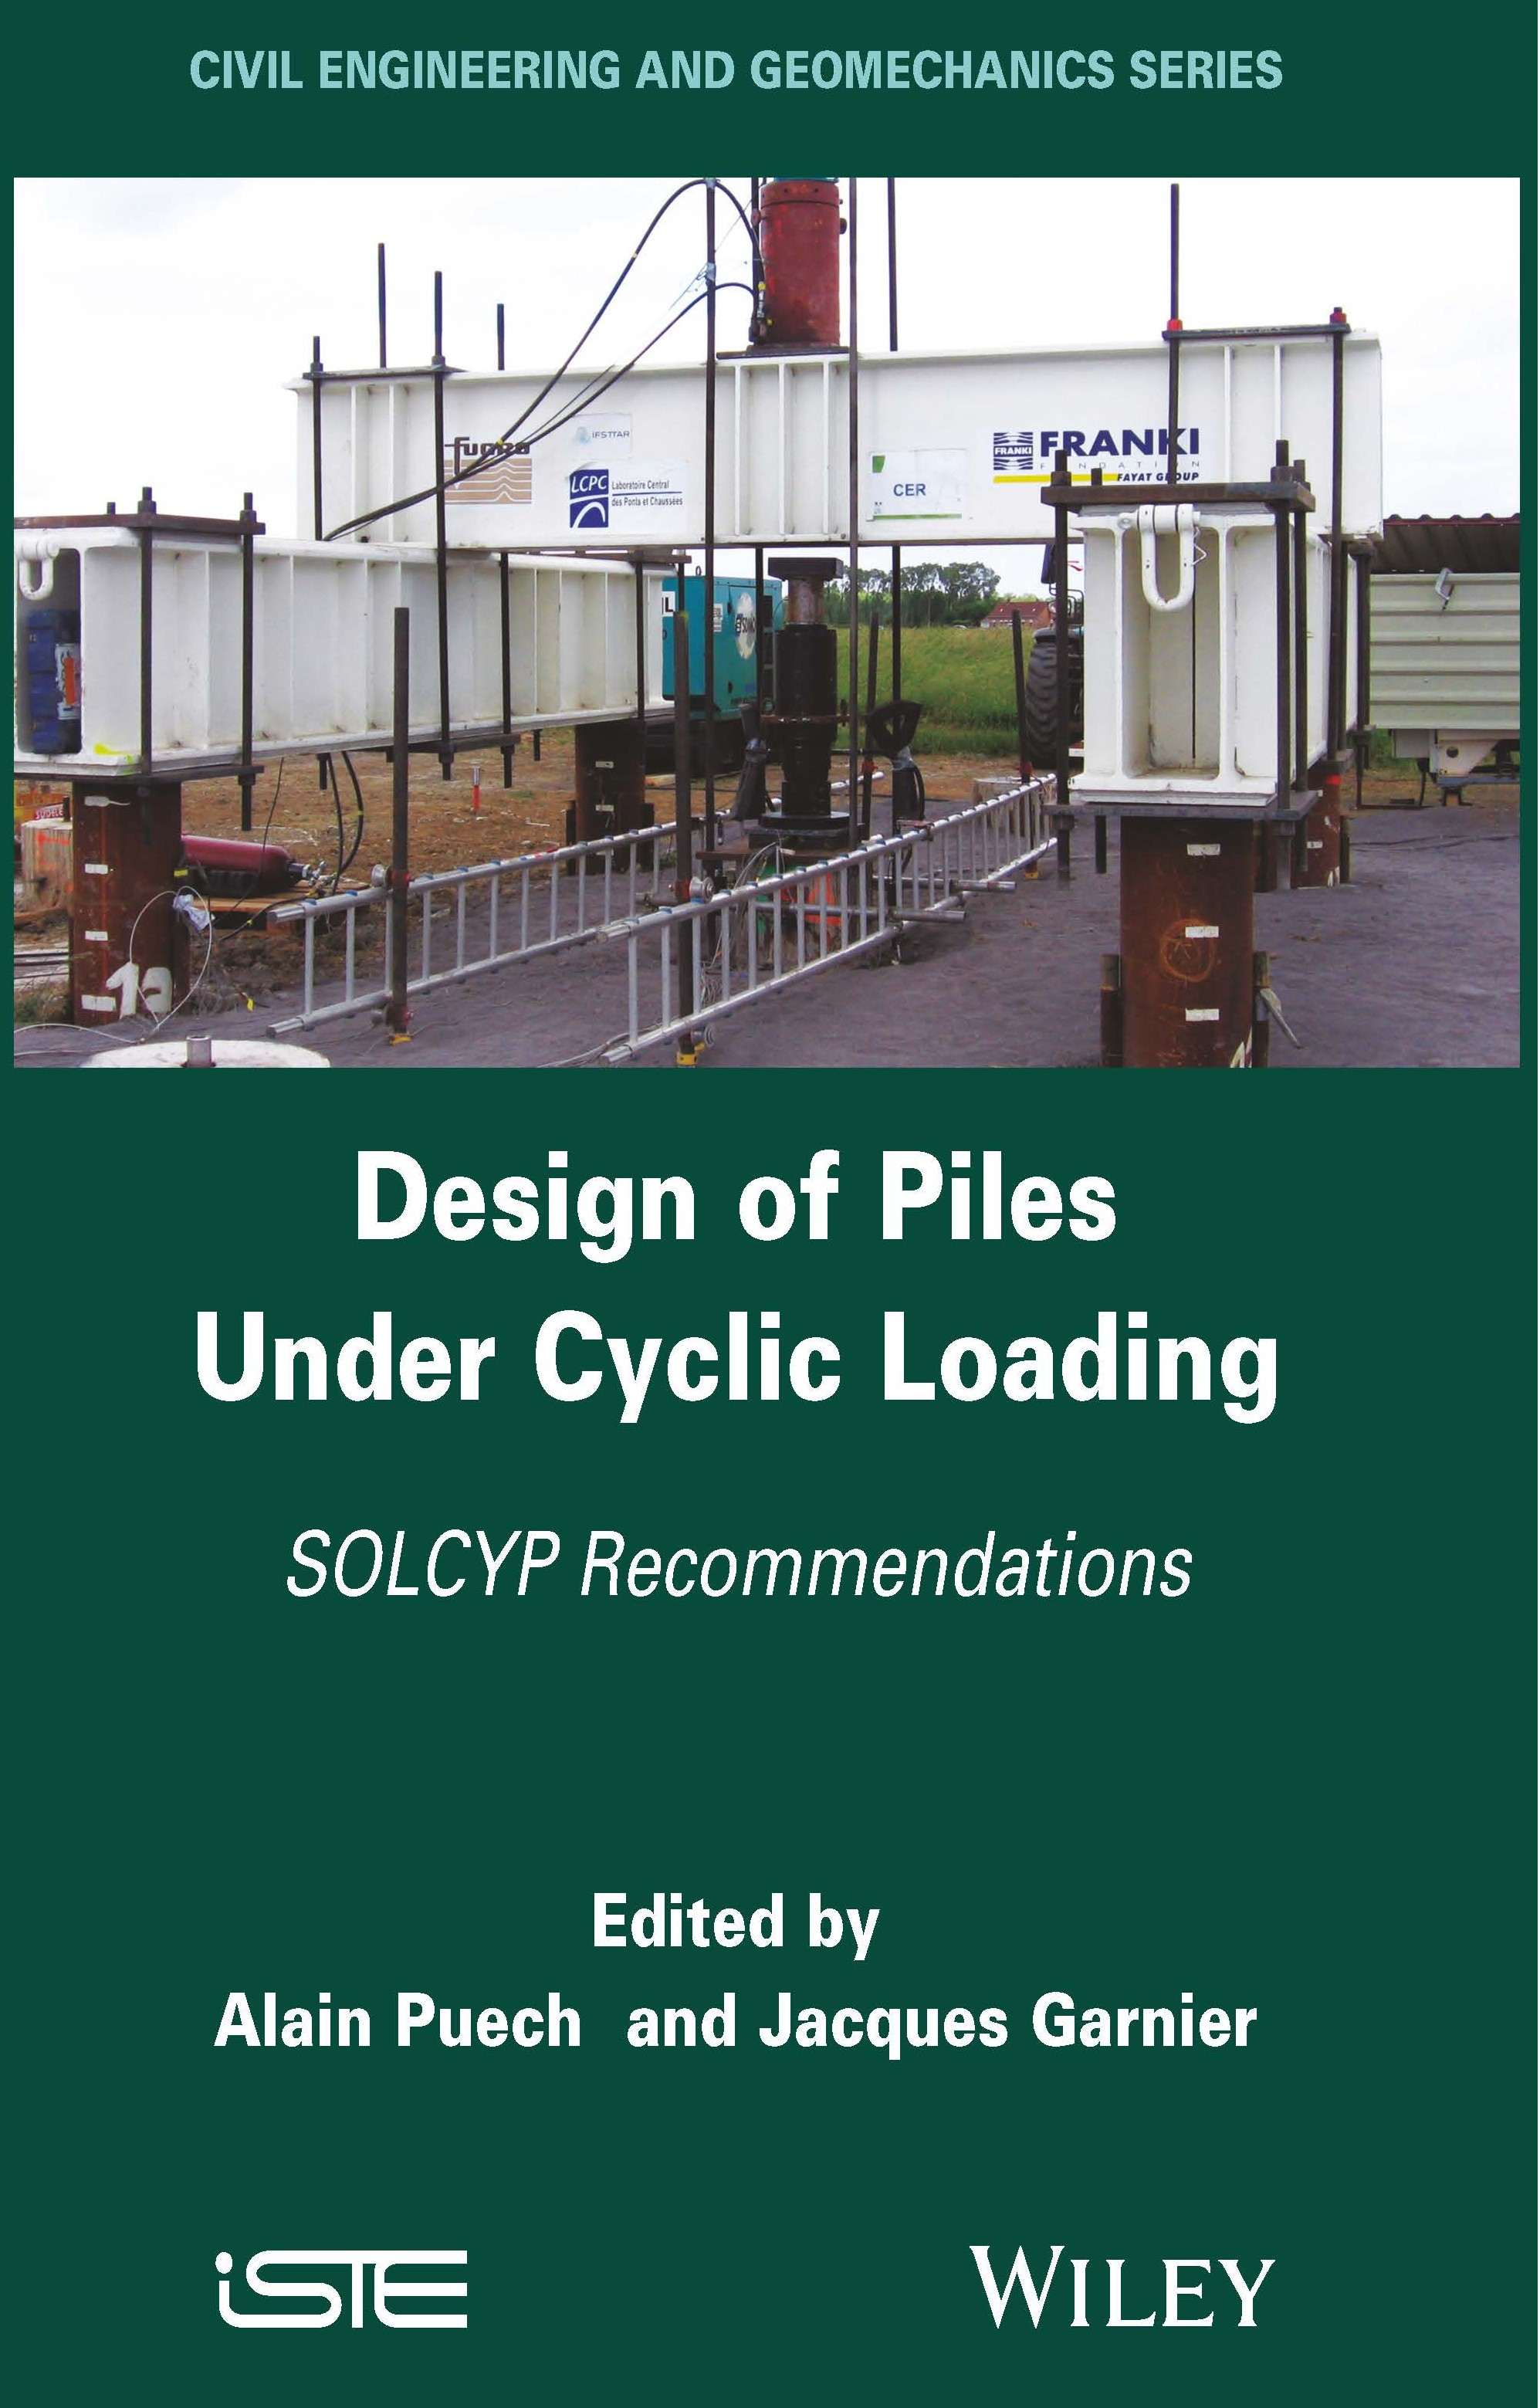 Design of Piles Under Cyclic Loading - SOLCYP Recommendations